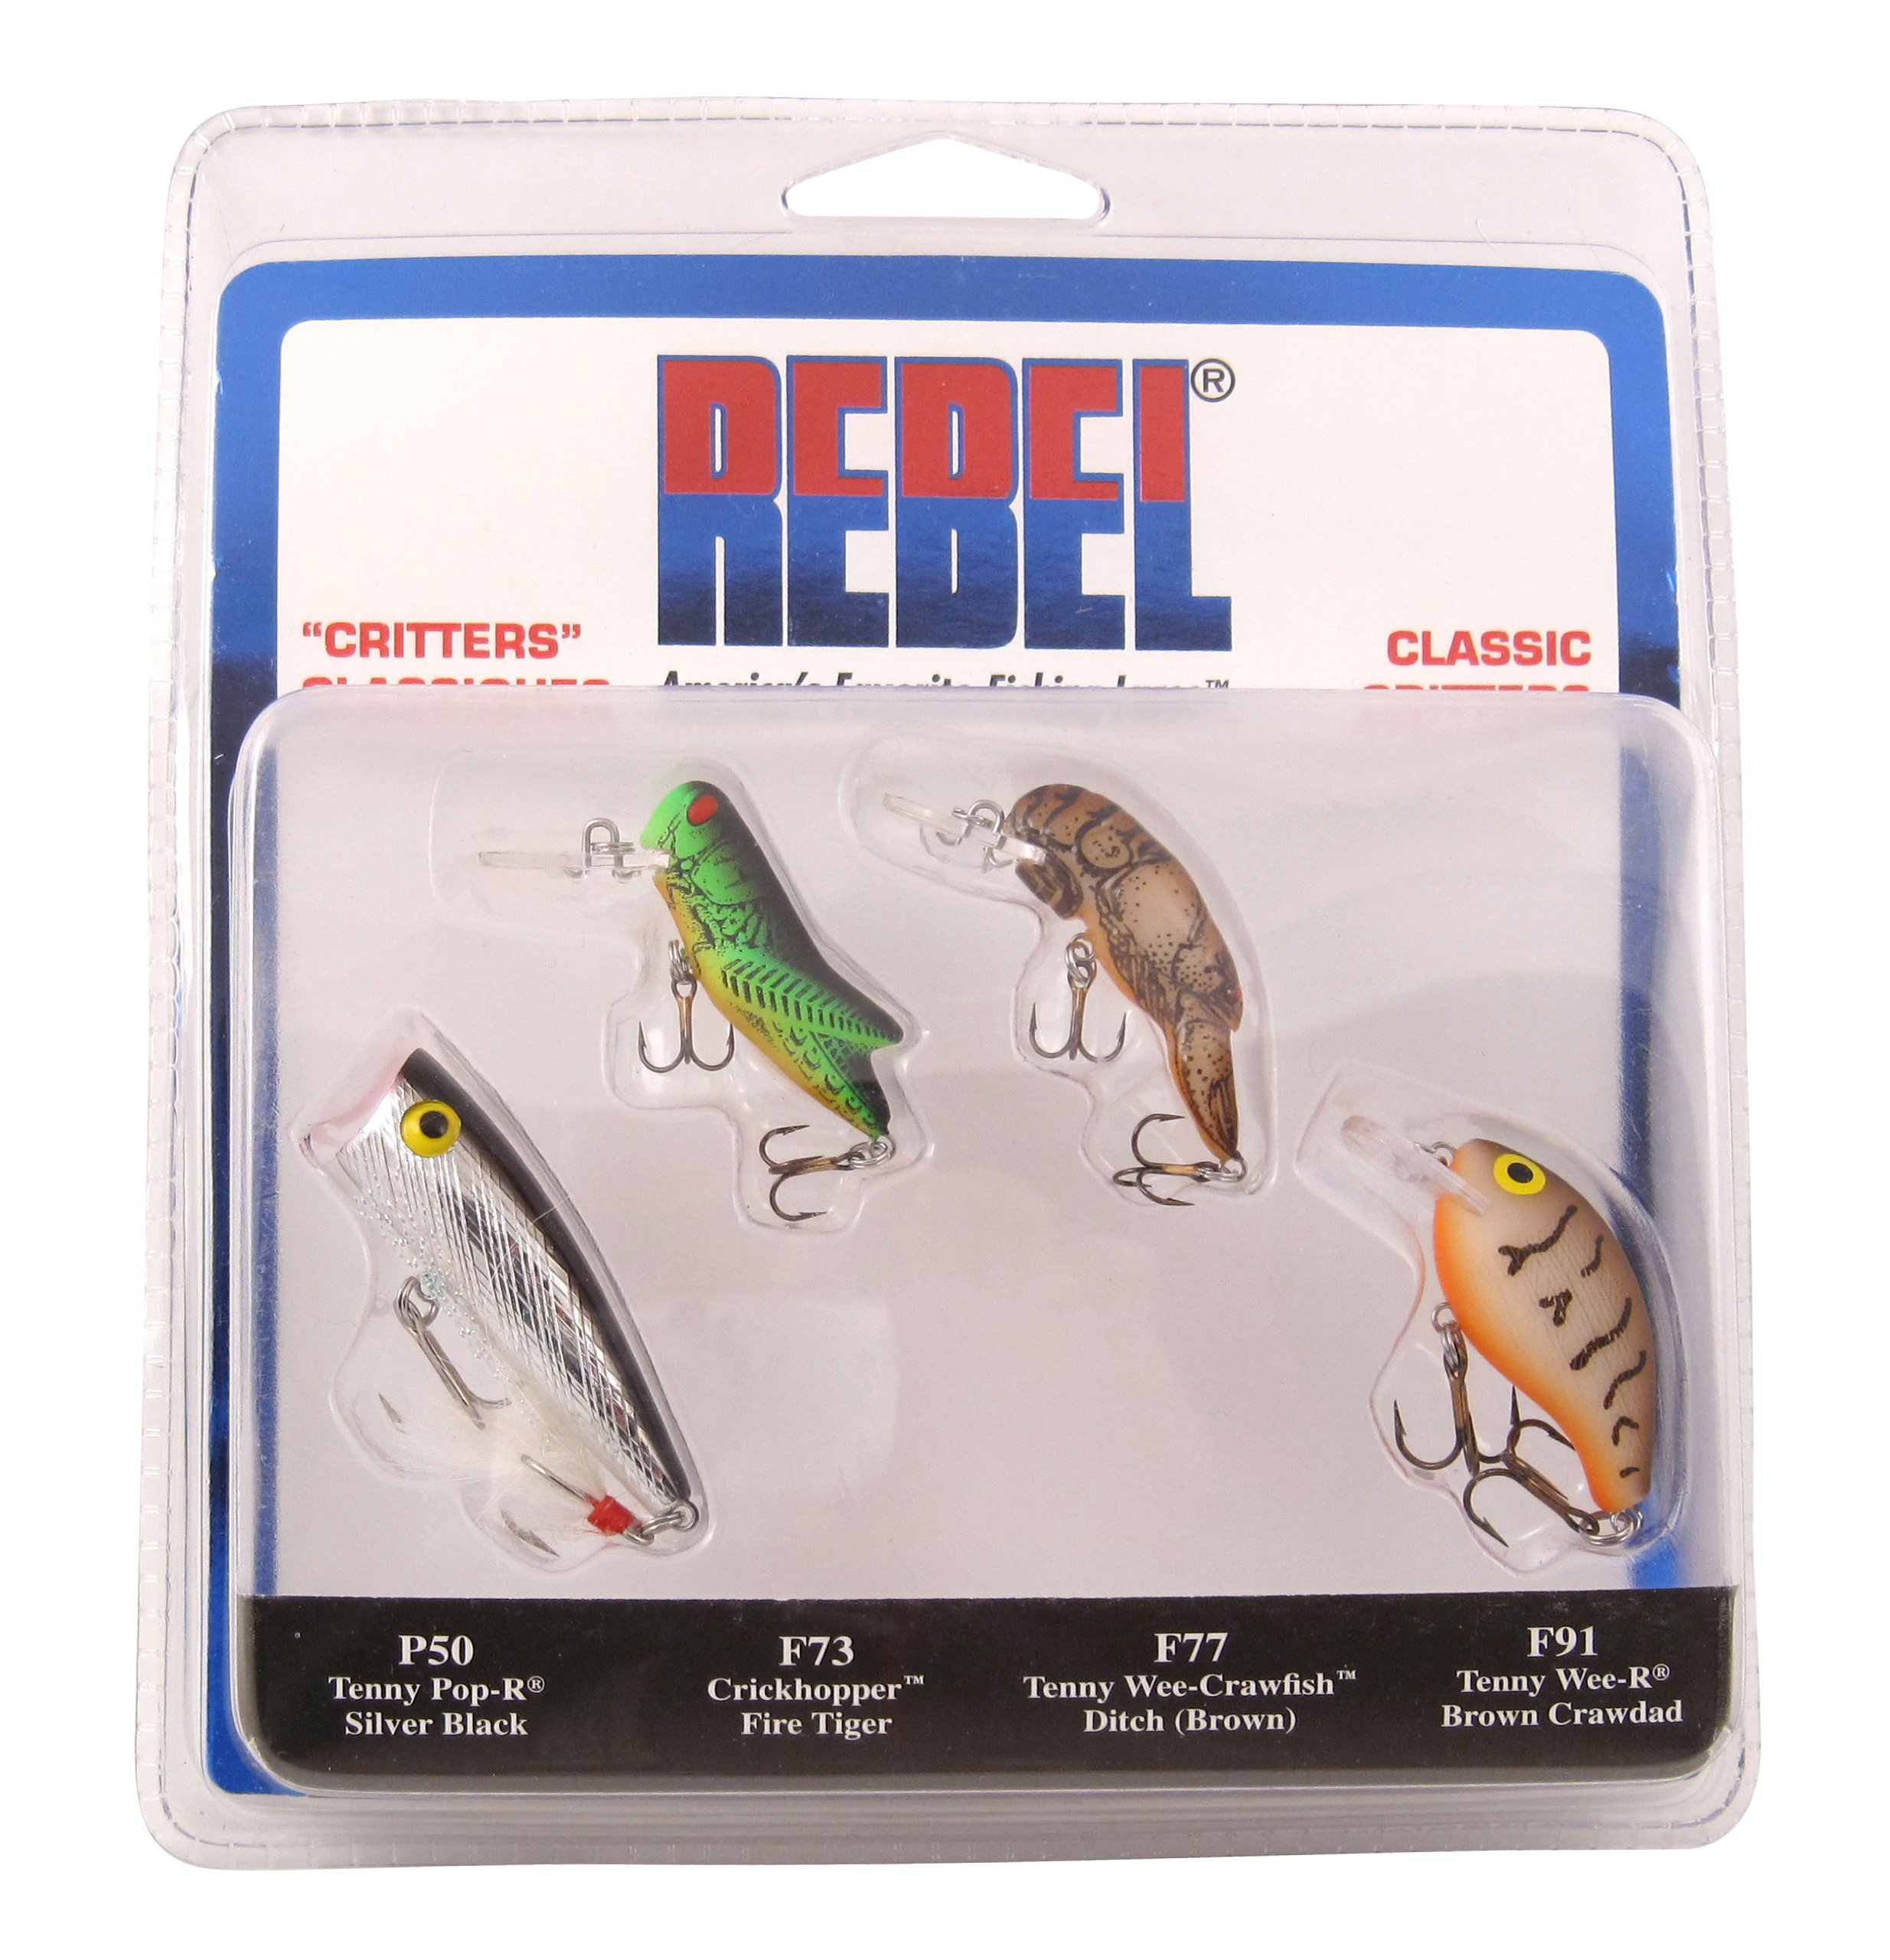 Rebel Lures #2 Micro Critter Tackle Pack of 3